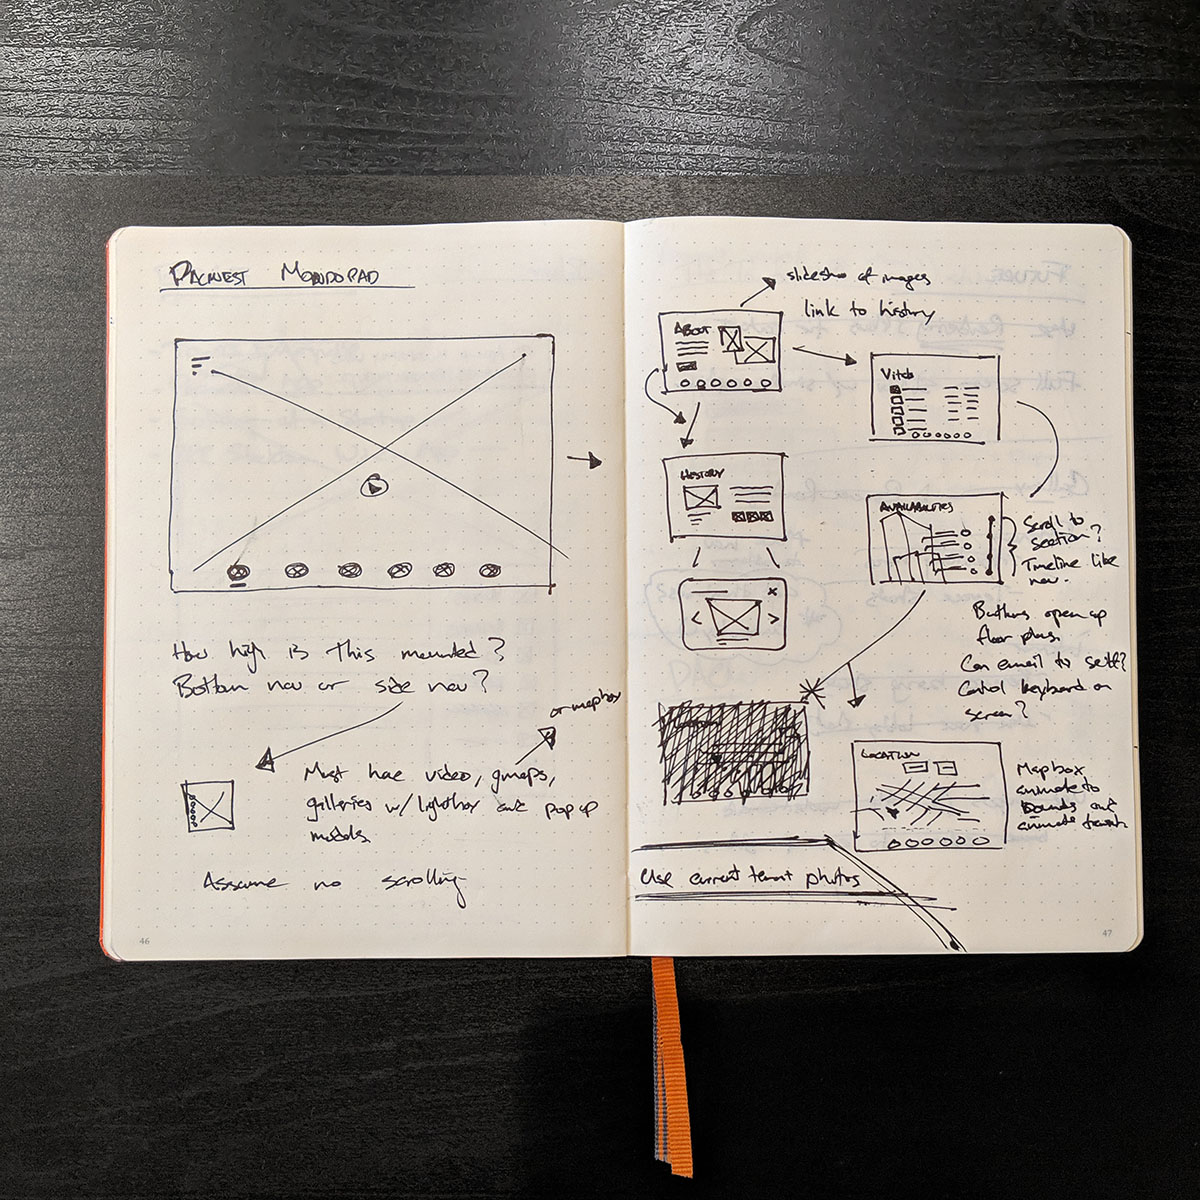 Initial sketch of app home screen and user flow through rough content